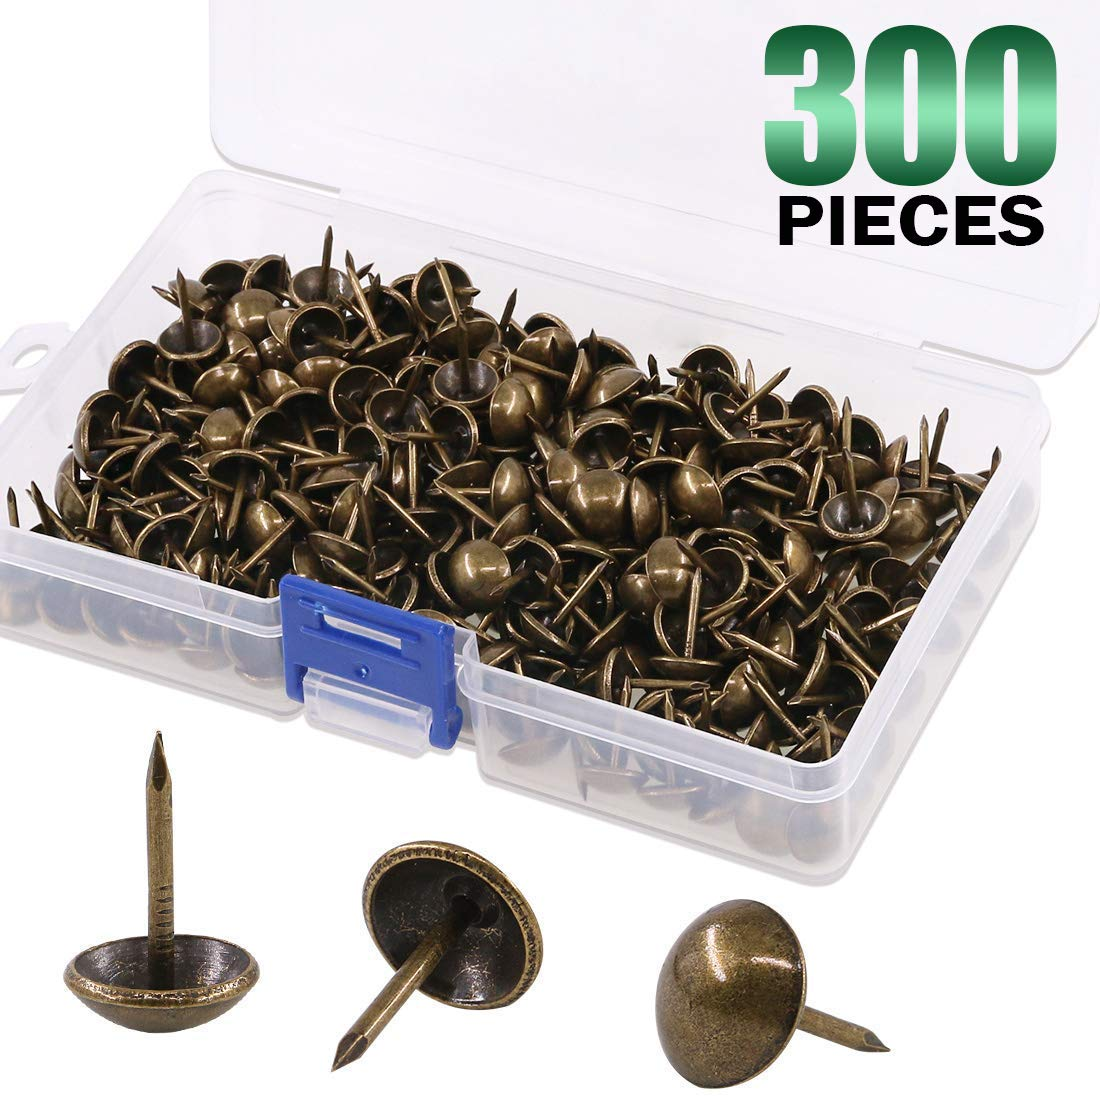 Keadic 300Pcs [ 7/16'' in Diameter] Antique Upholstery Tacks Furniture Nails Pins Kit for Upholstered Furniture Cork Board or DIY Projects - Bronze